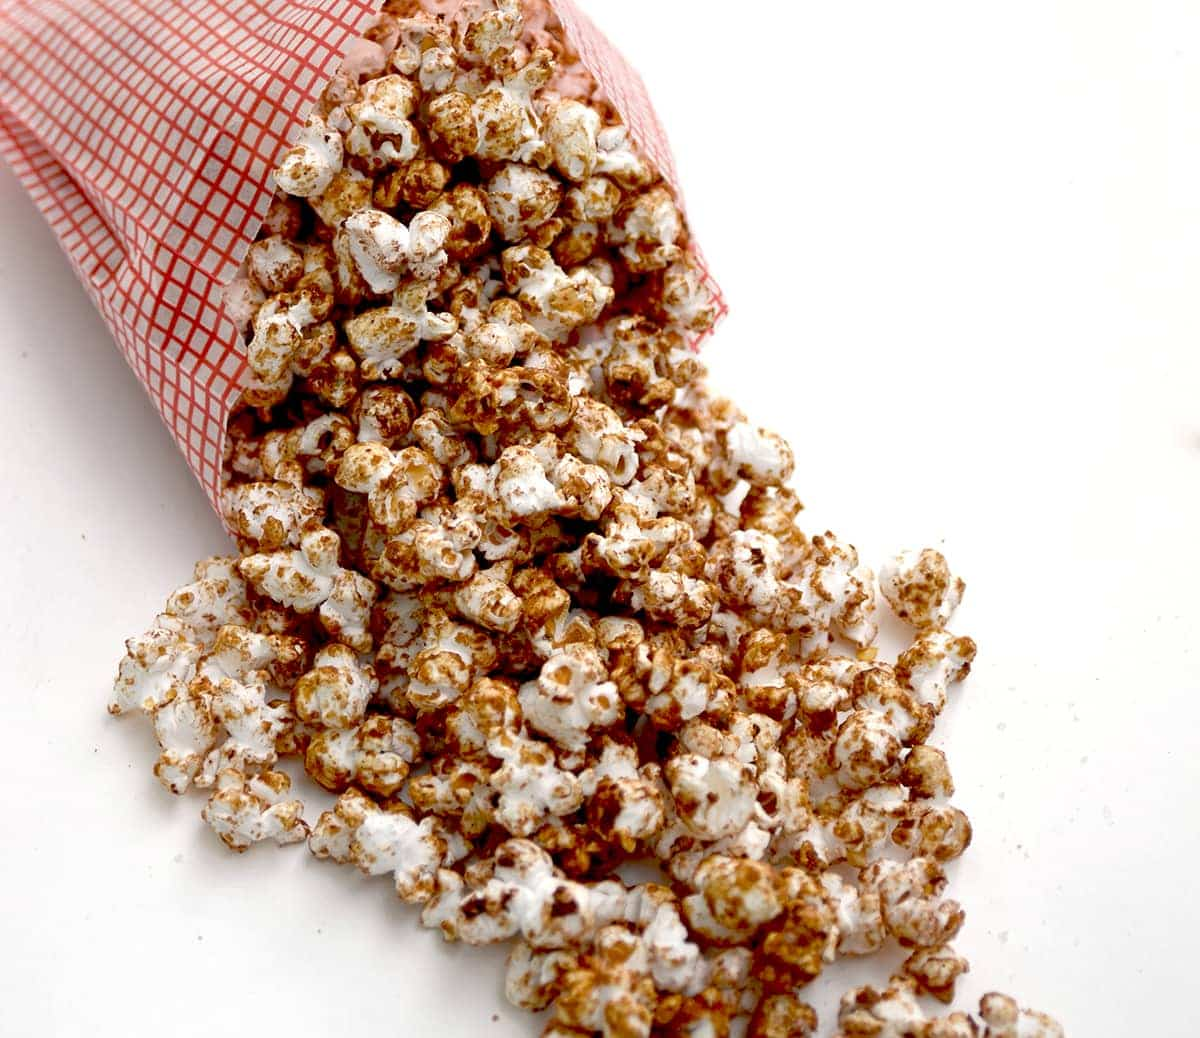 Mexican Spiced Hot Chocolate Popcorn is a perfect movie night snack for #Choctoberfest. Flavored with cocoa, cinnamon, and red chili flakes, this popcorn delights the taste buds.   vintagekitty.com